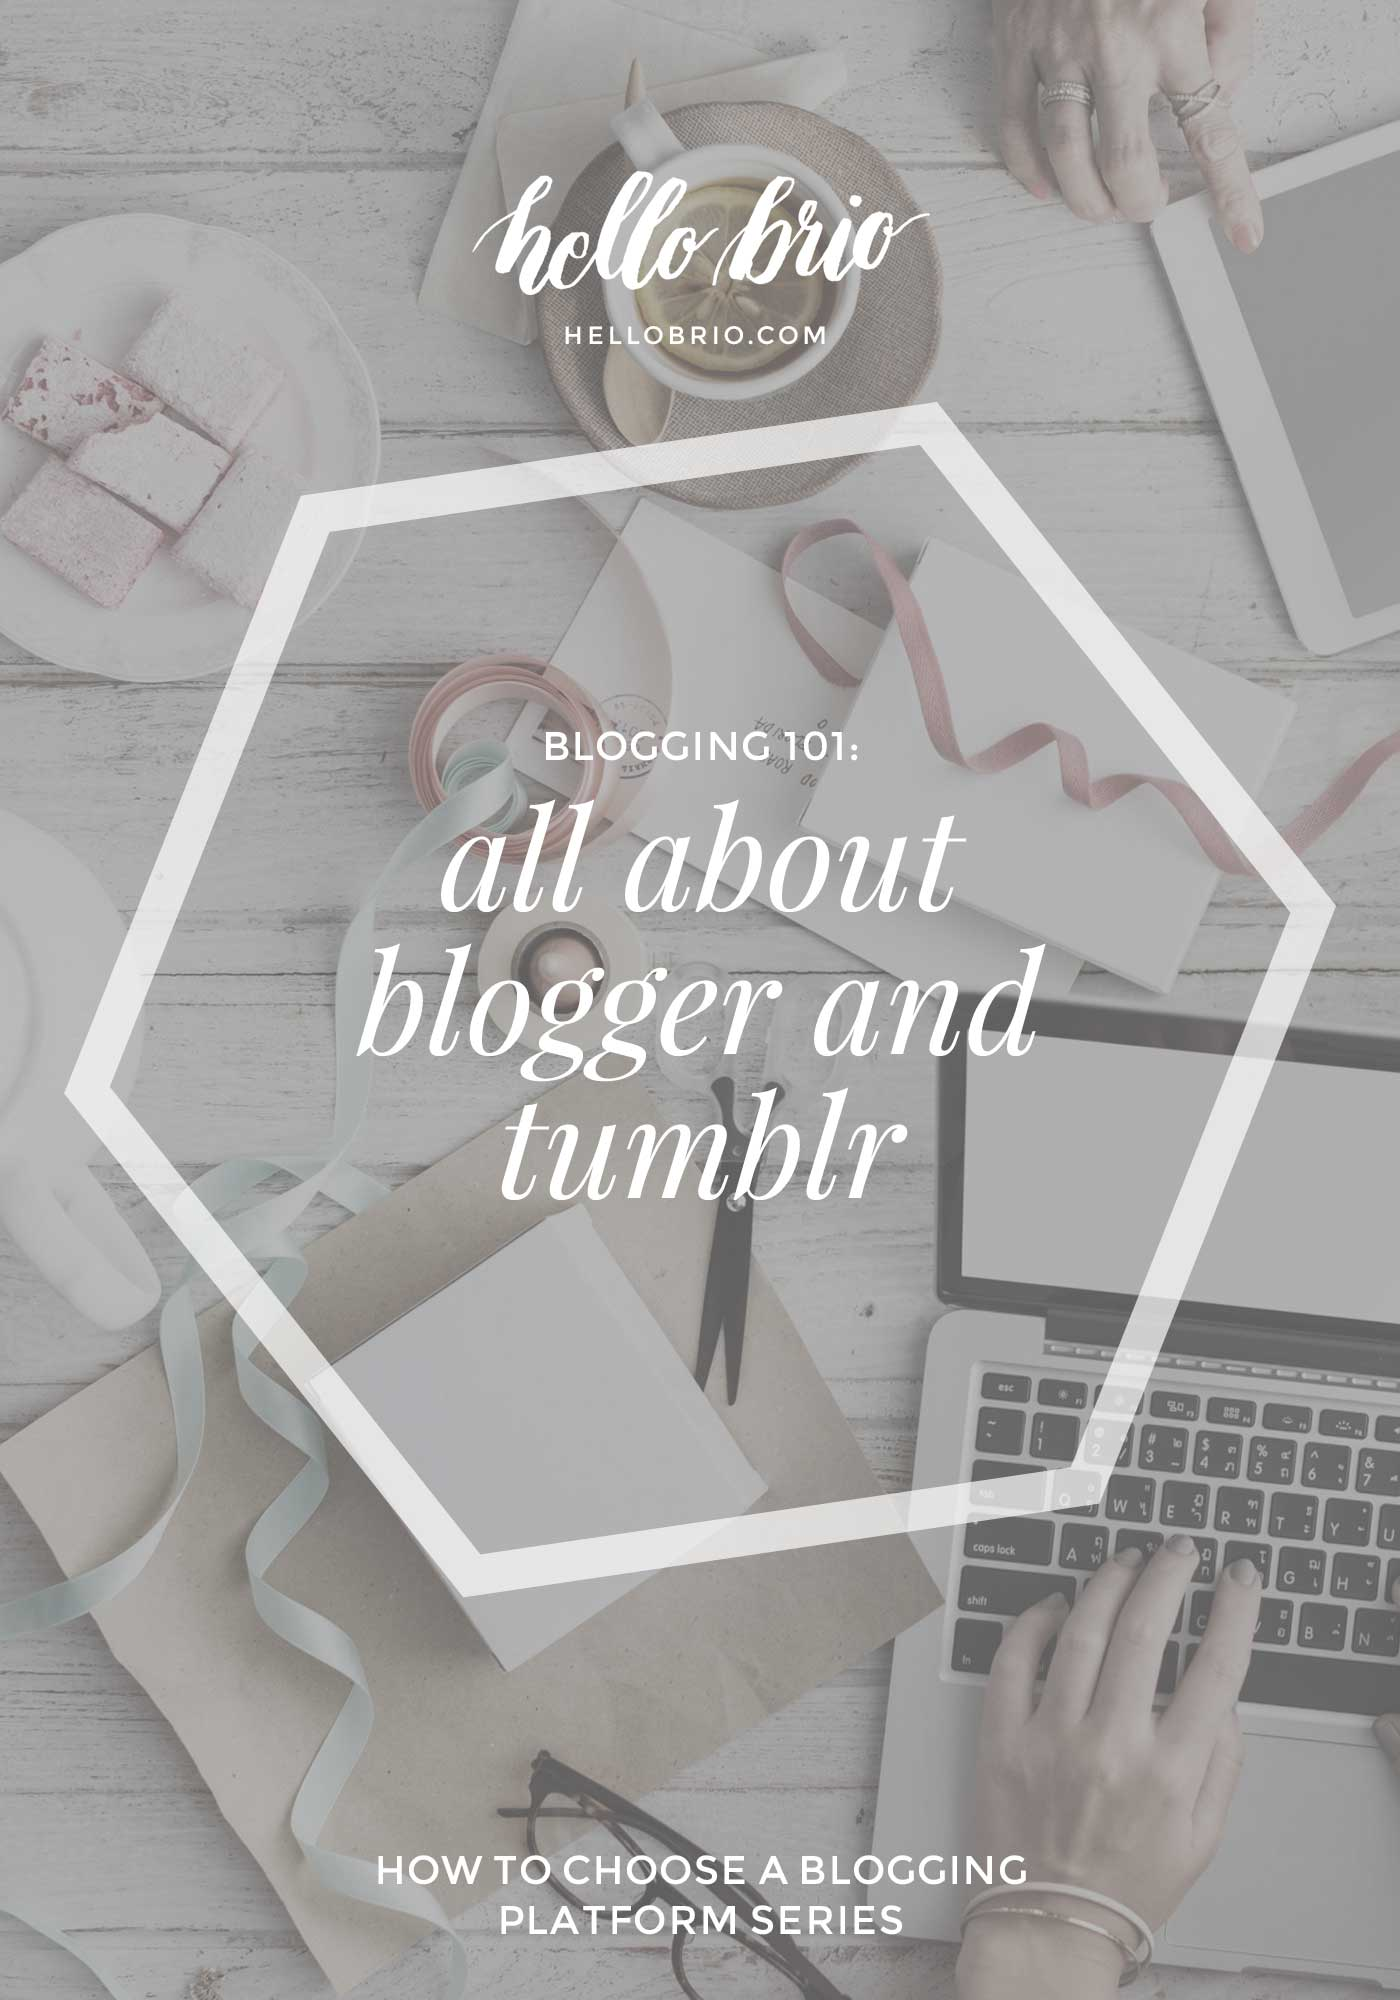 Blogging 101: all about Blogger and Tumblr as blogging platforms